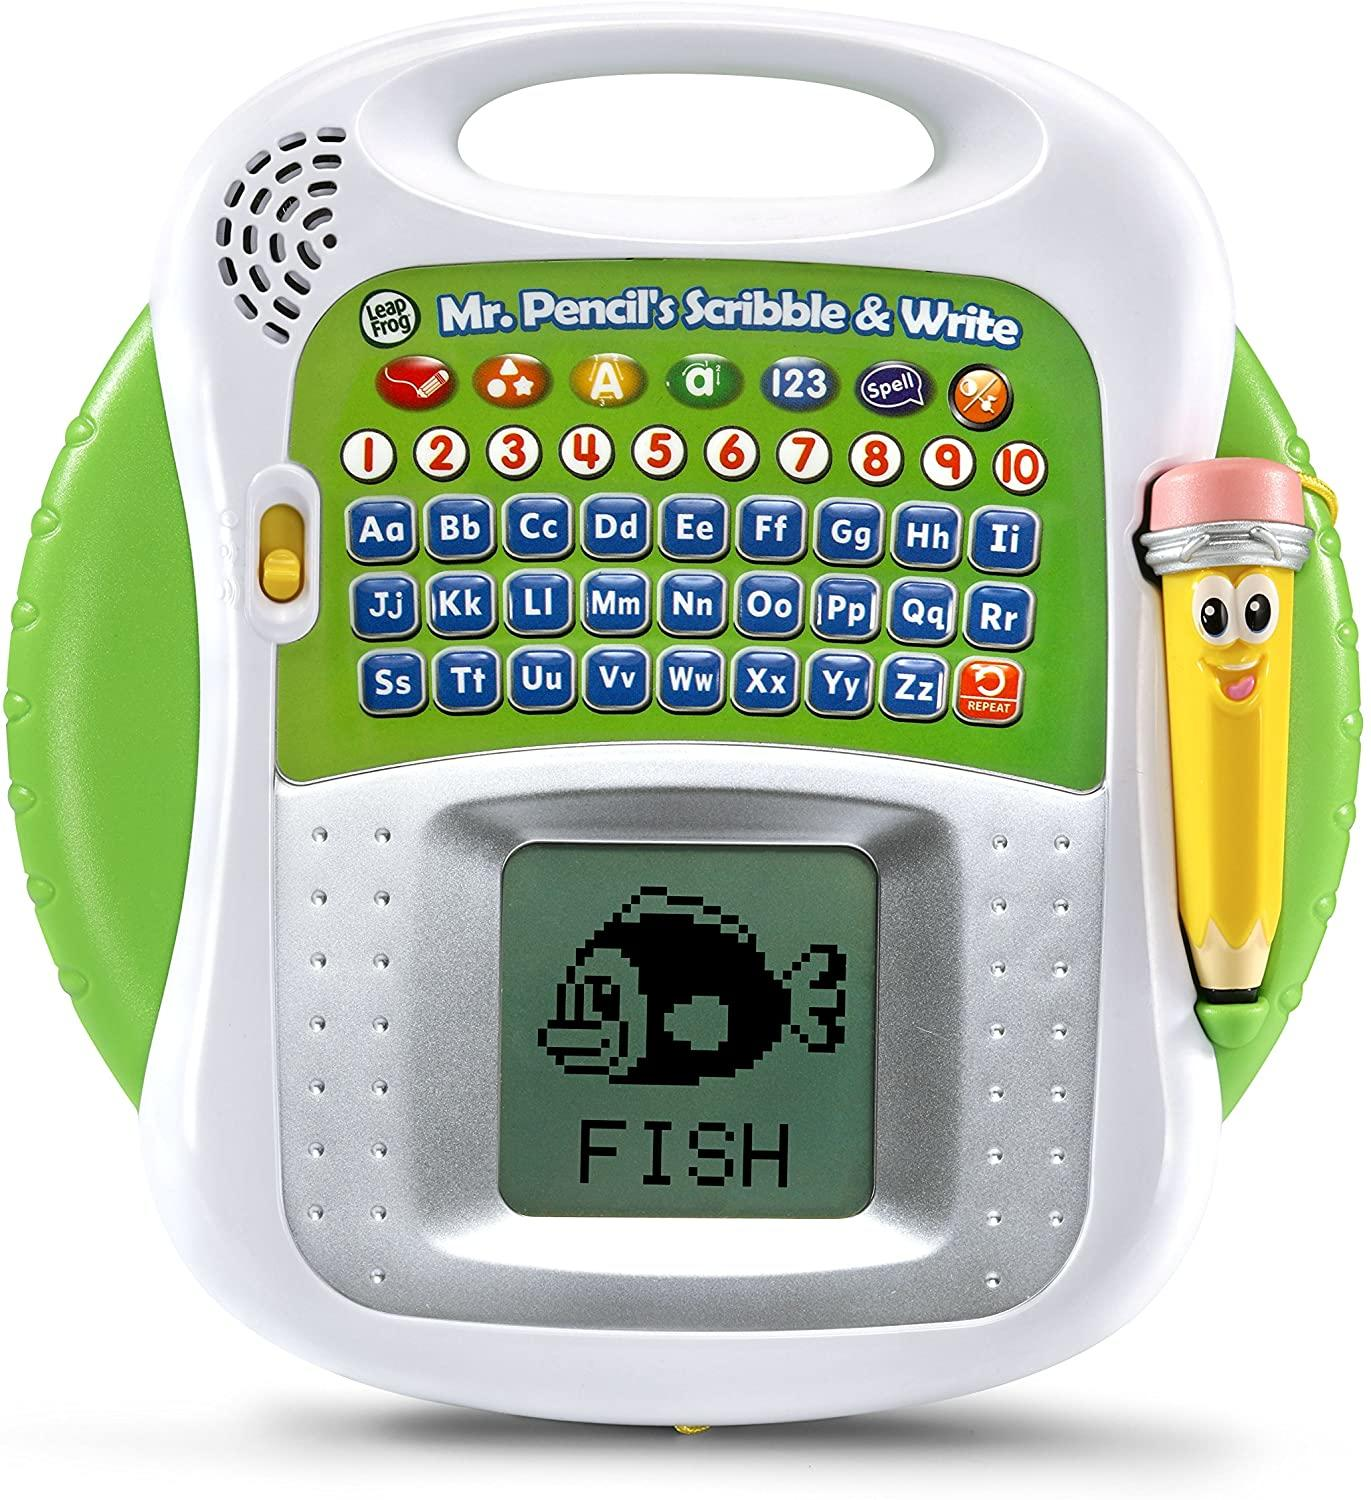 Leapfrog Mr Pencils Scribble And Write Toymaster Ballina